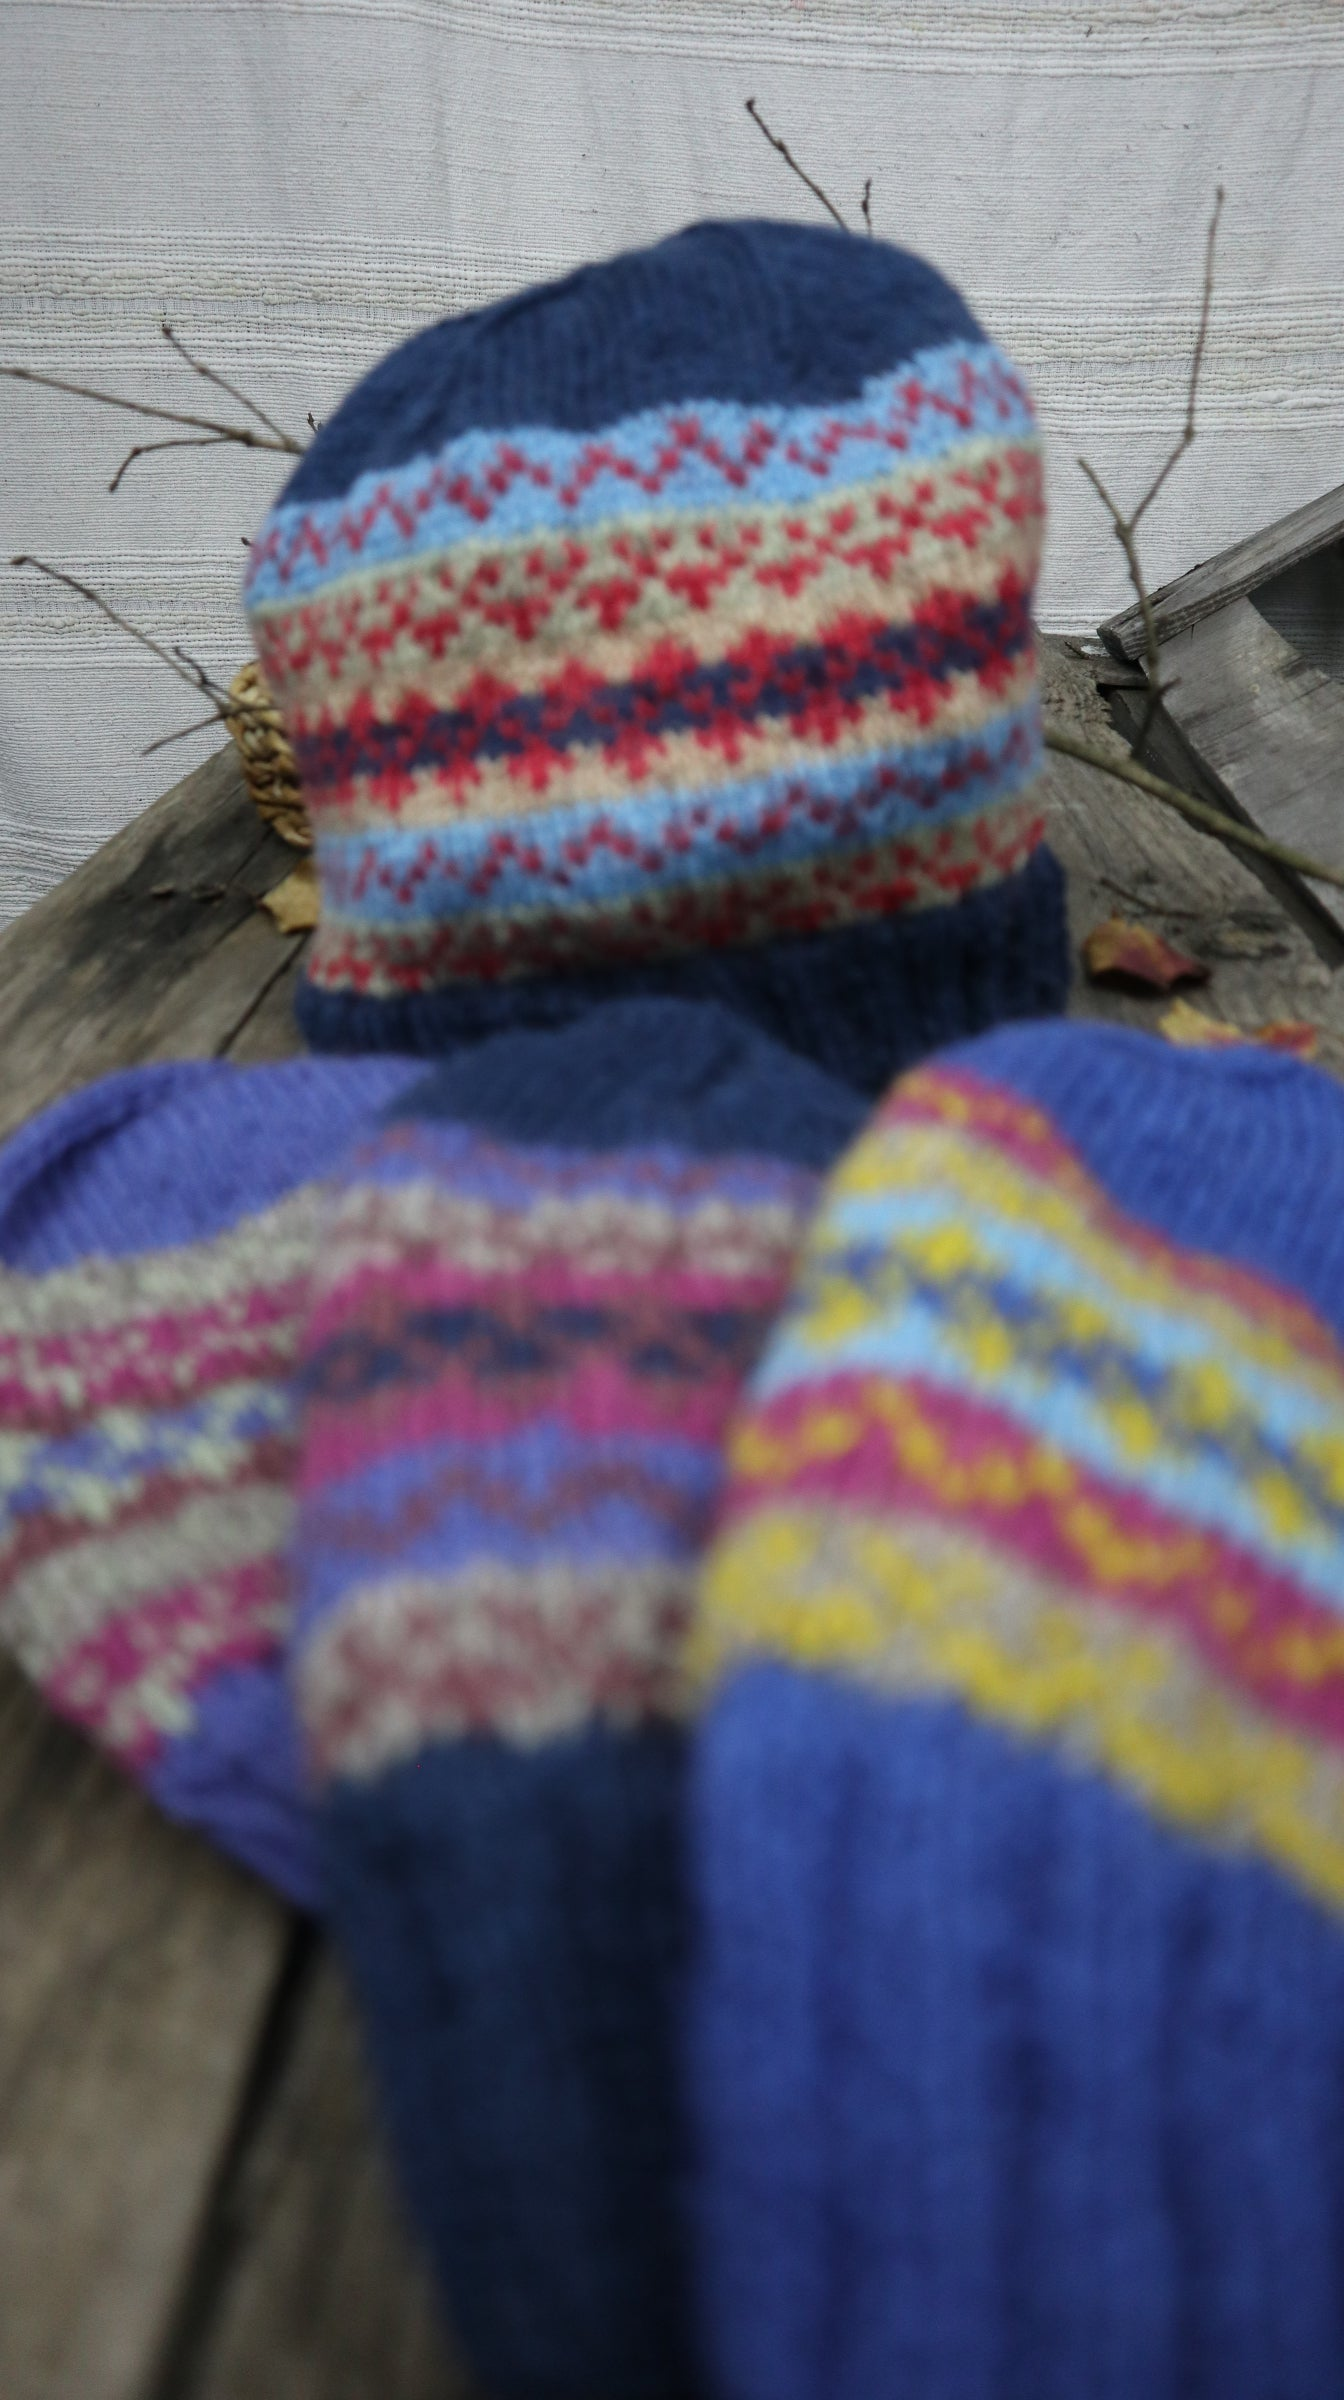 Fair Trade Ethical Woollen Beanie in Patterned Design